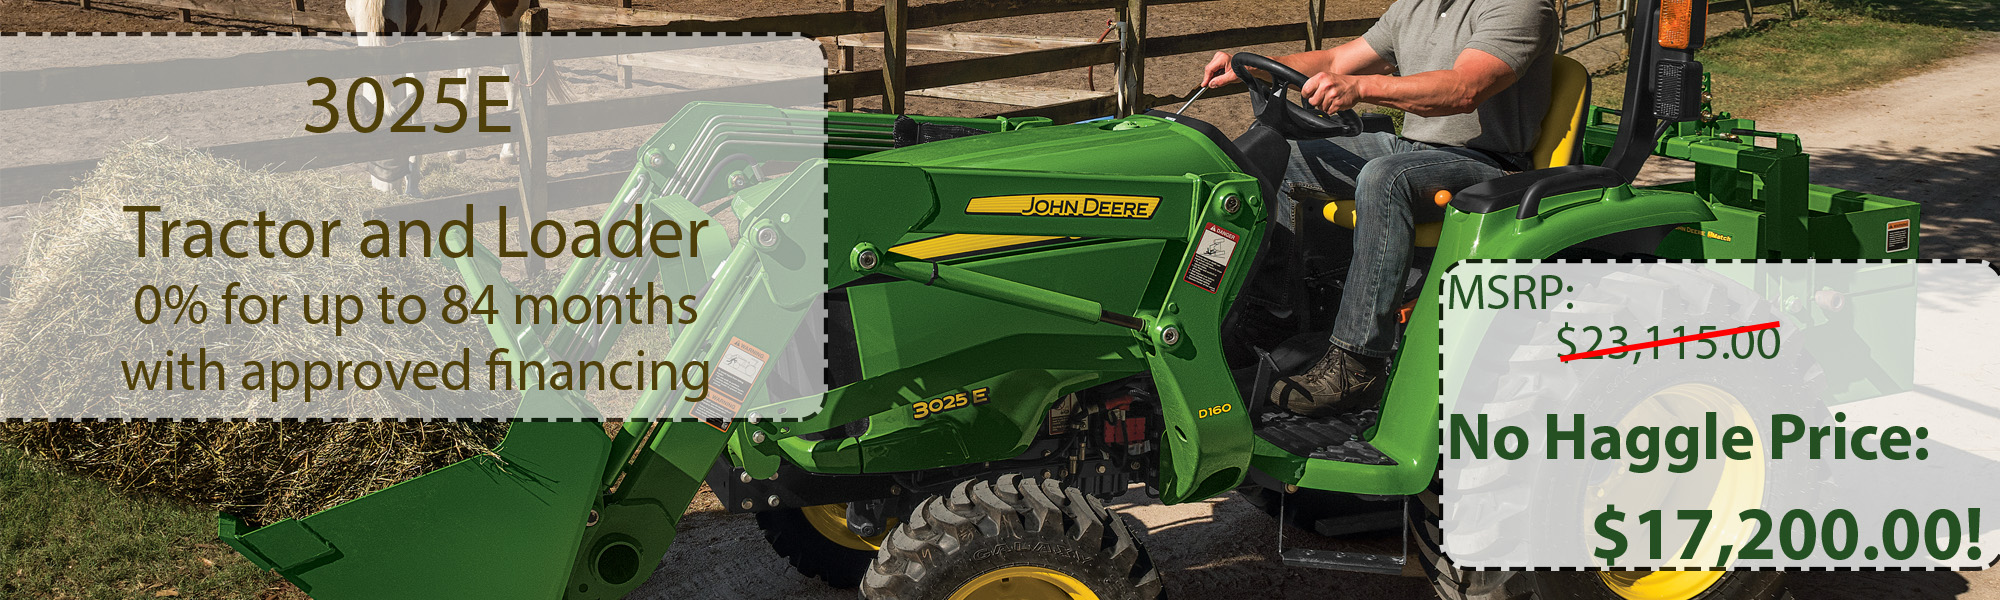 John Deere Equipment Dealer | Sub-Compact Tractors | Compact